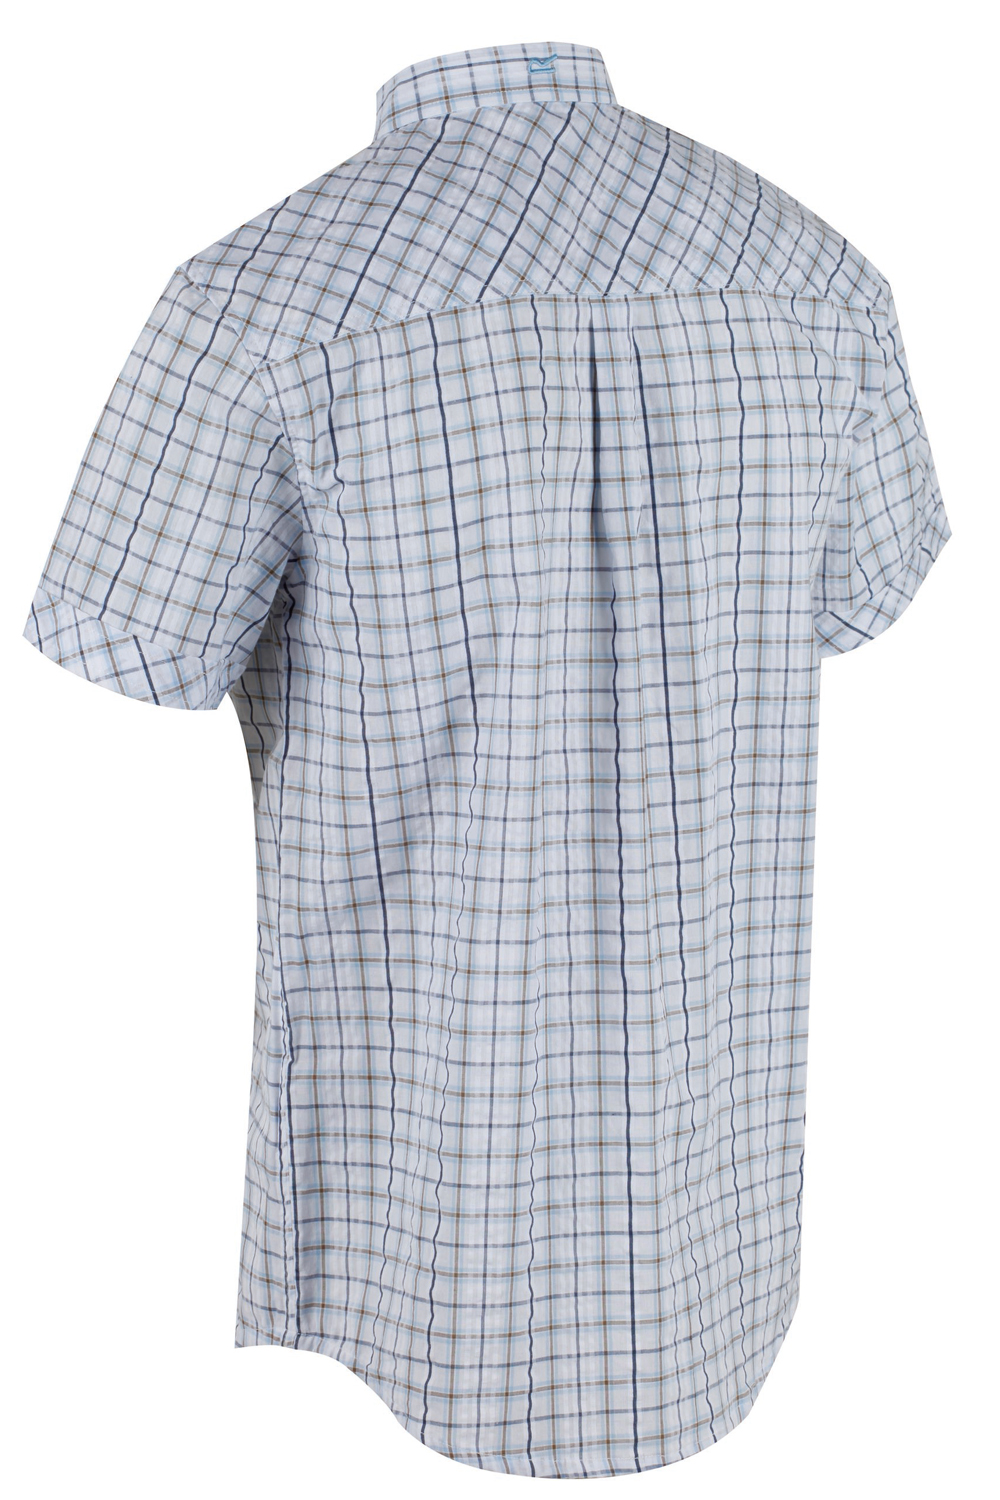 Regatta-Mens-Deakin-II-Coolweave-Cotton-Short-Sleeved-Summer-Check-Shirt-RRP-50 thumbnail 20